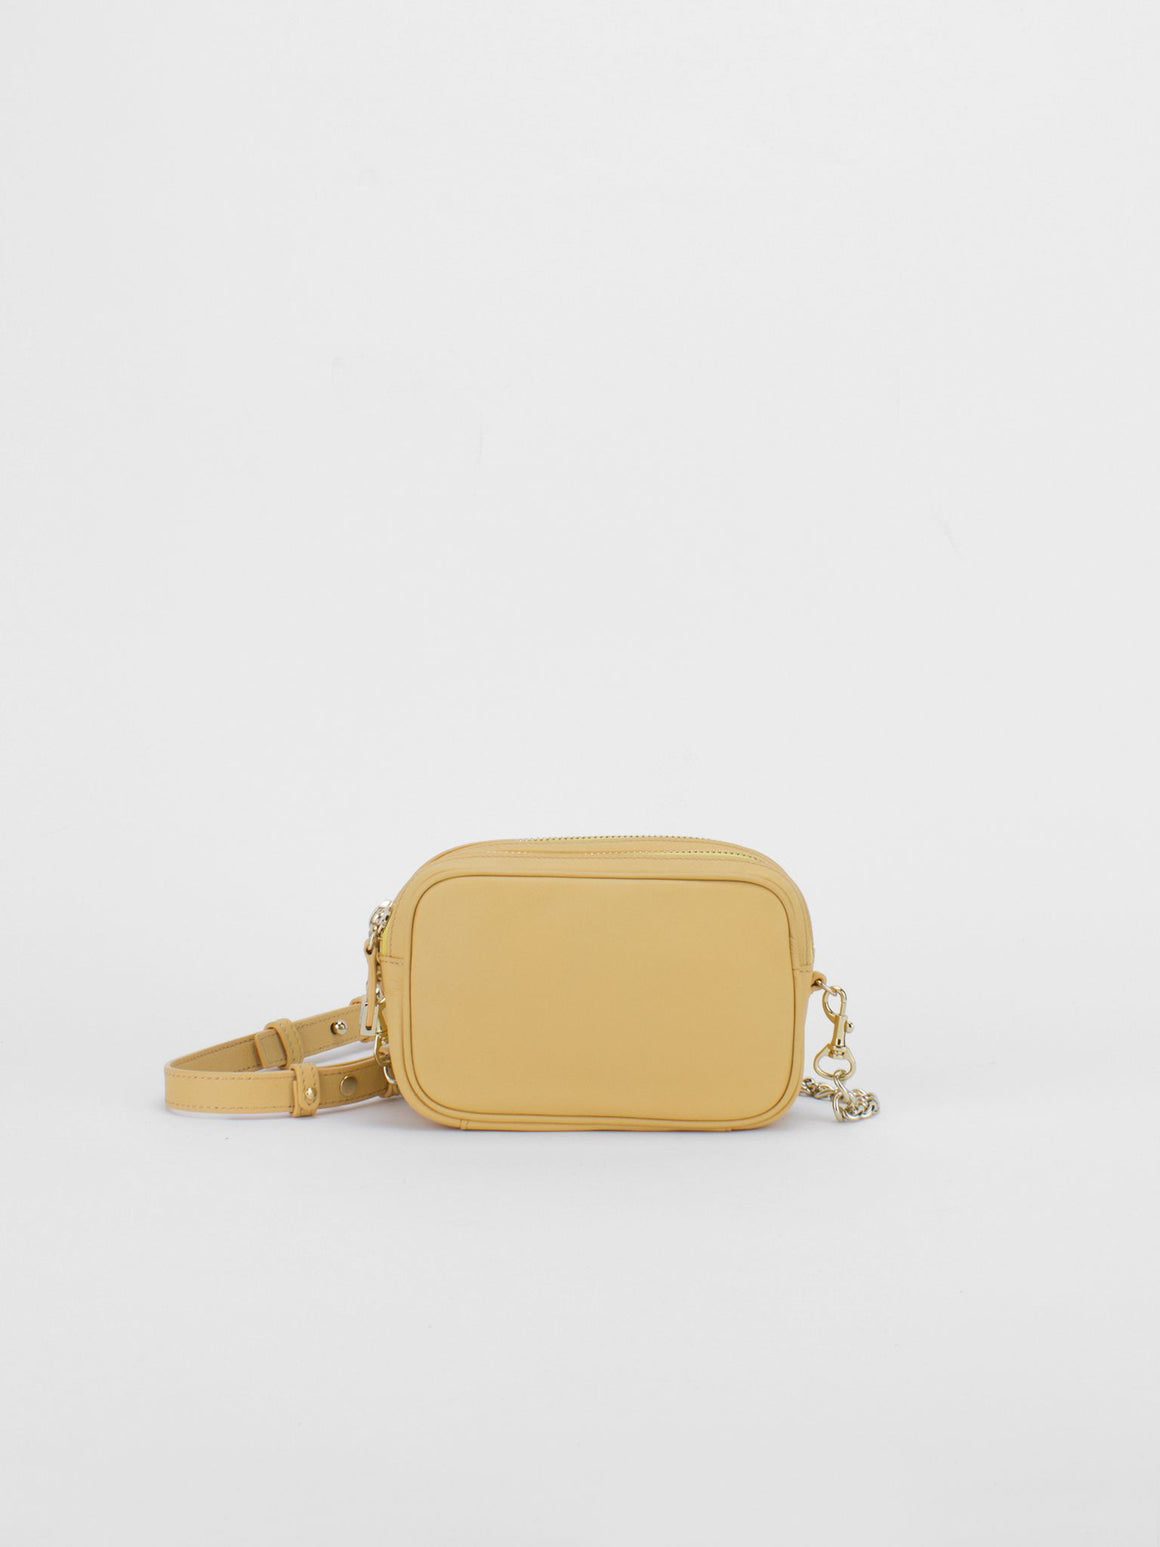 TIFFANY Leather Macaron Mini - Milk Yellow